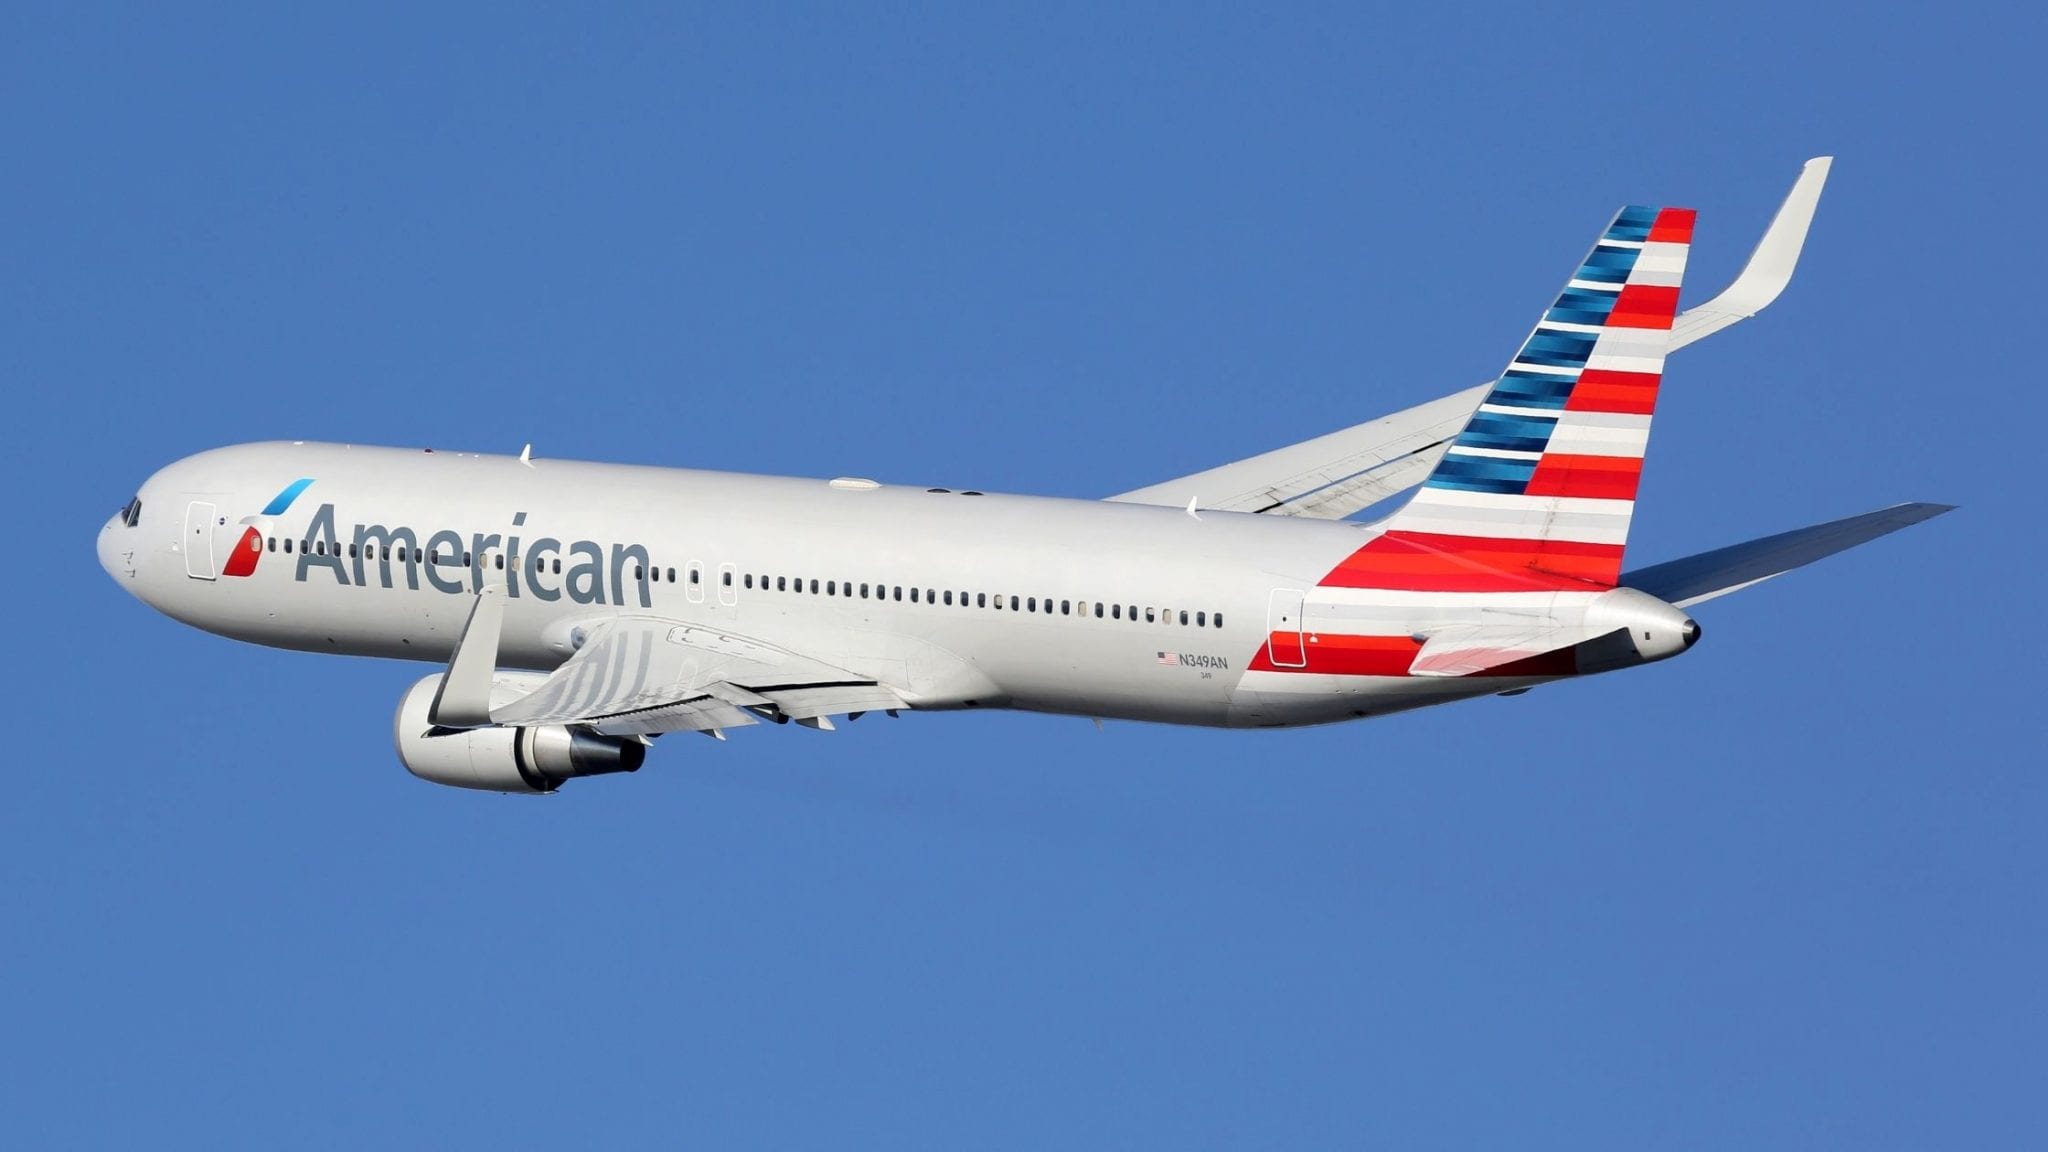 American Airlines (AAL) Earnings Call Transcript Q4 2020